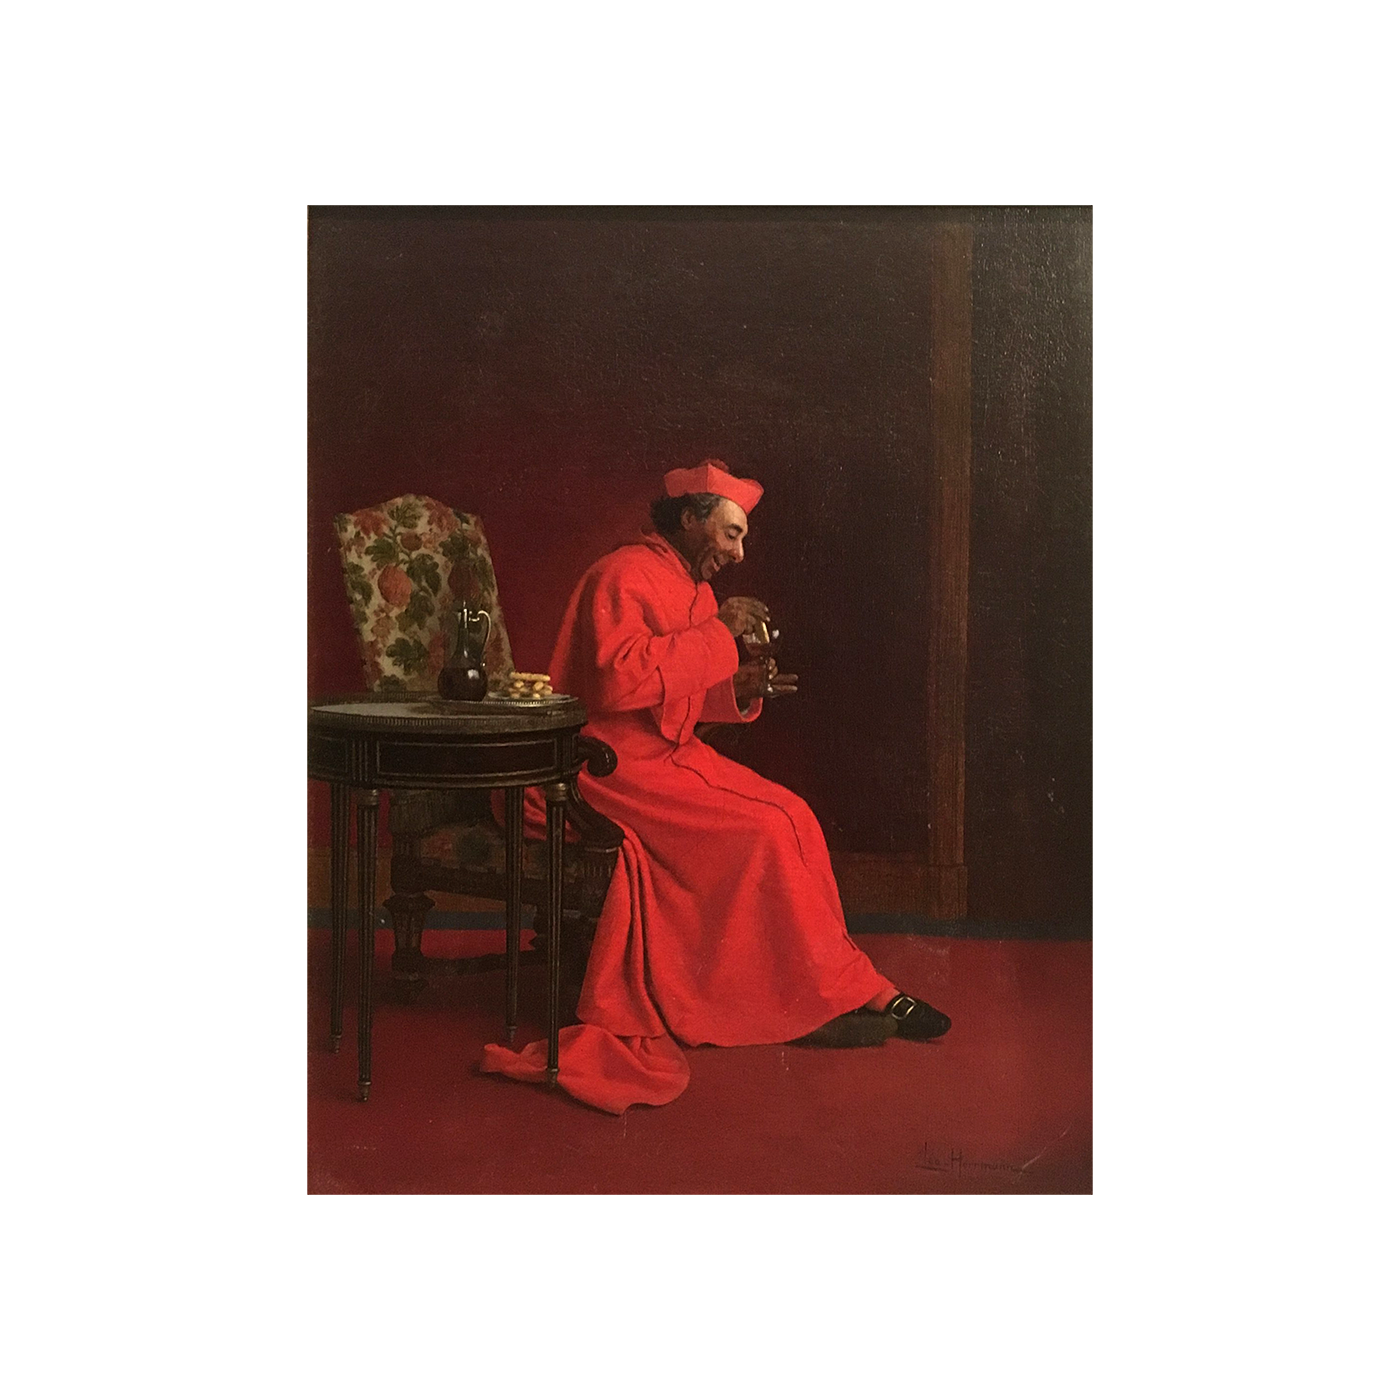 Leo Herrmann [1853-1927] religious painting : The cardinal dipping wafers into wine, ca.1882-1888.